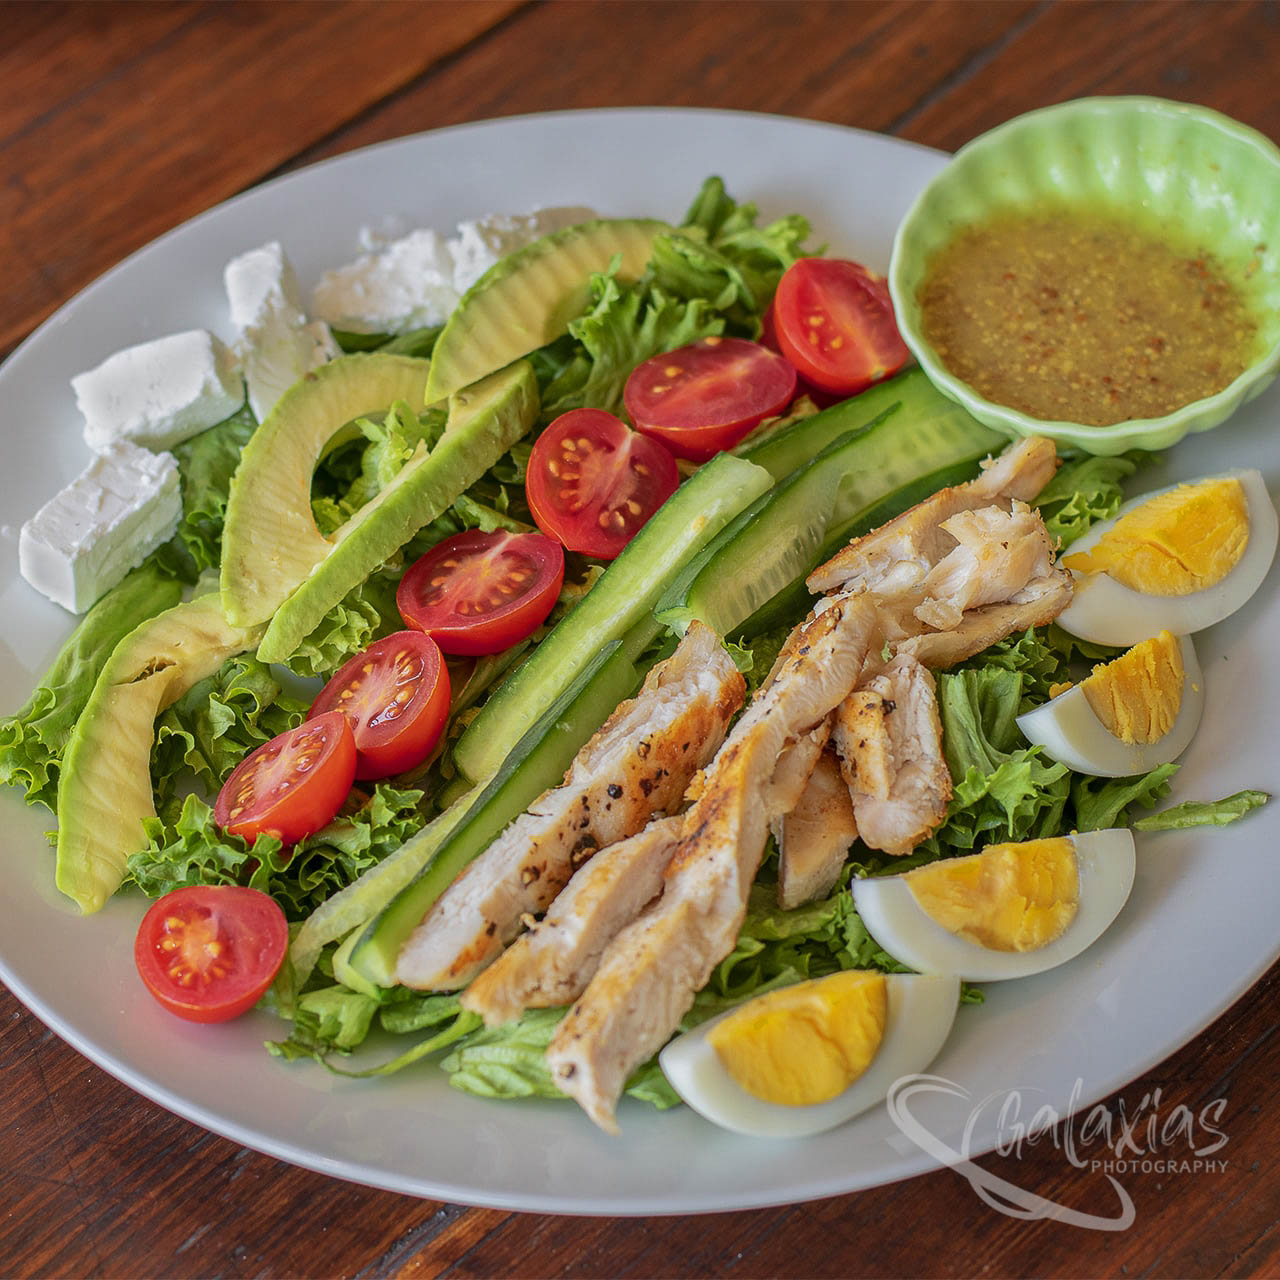 Chicken Salad by Galaxias Photography